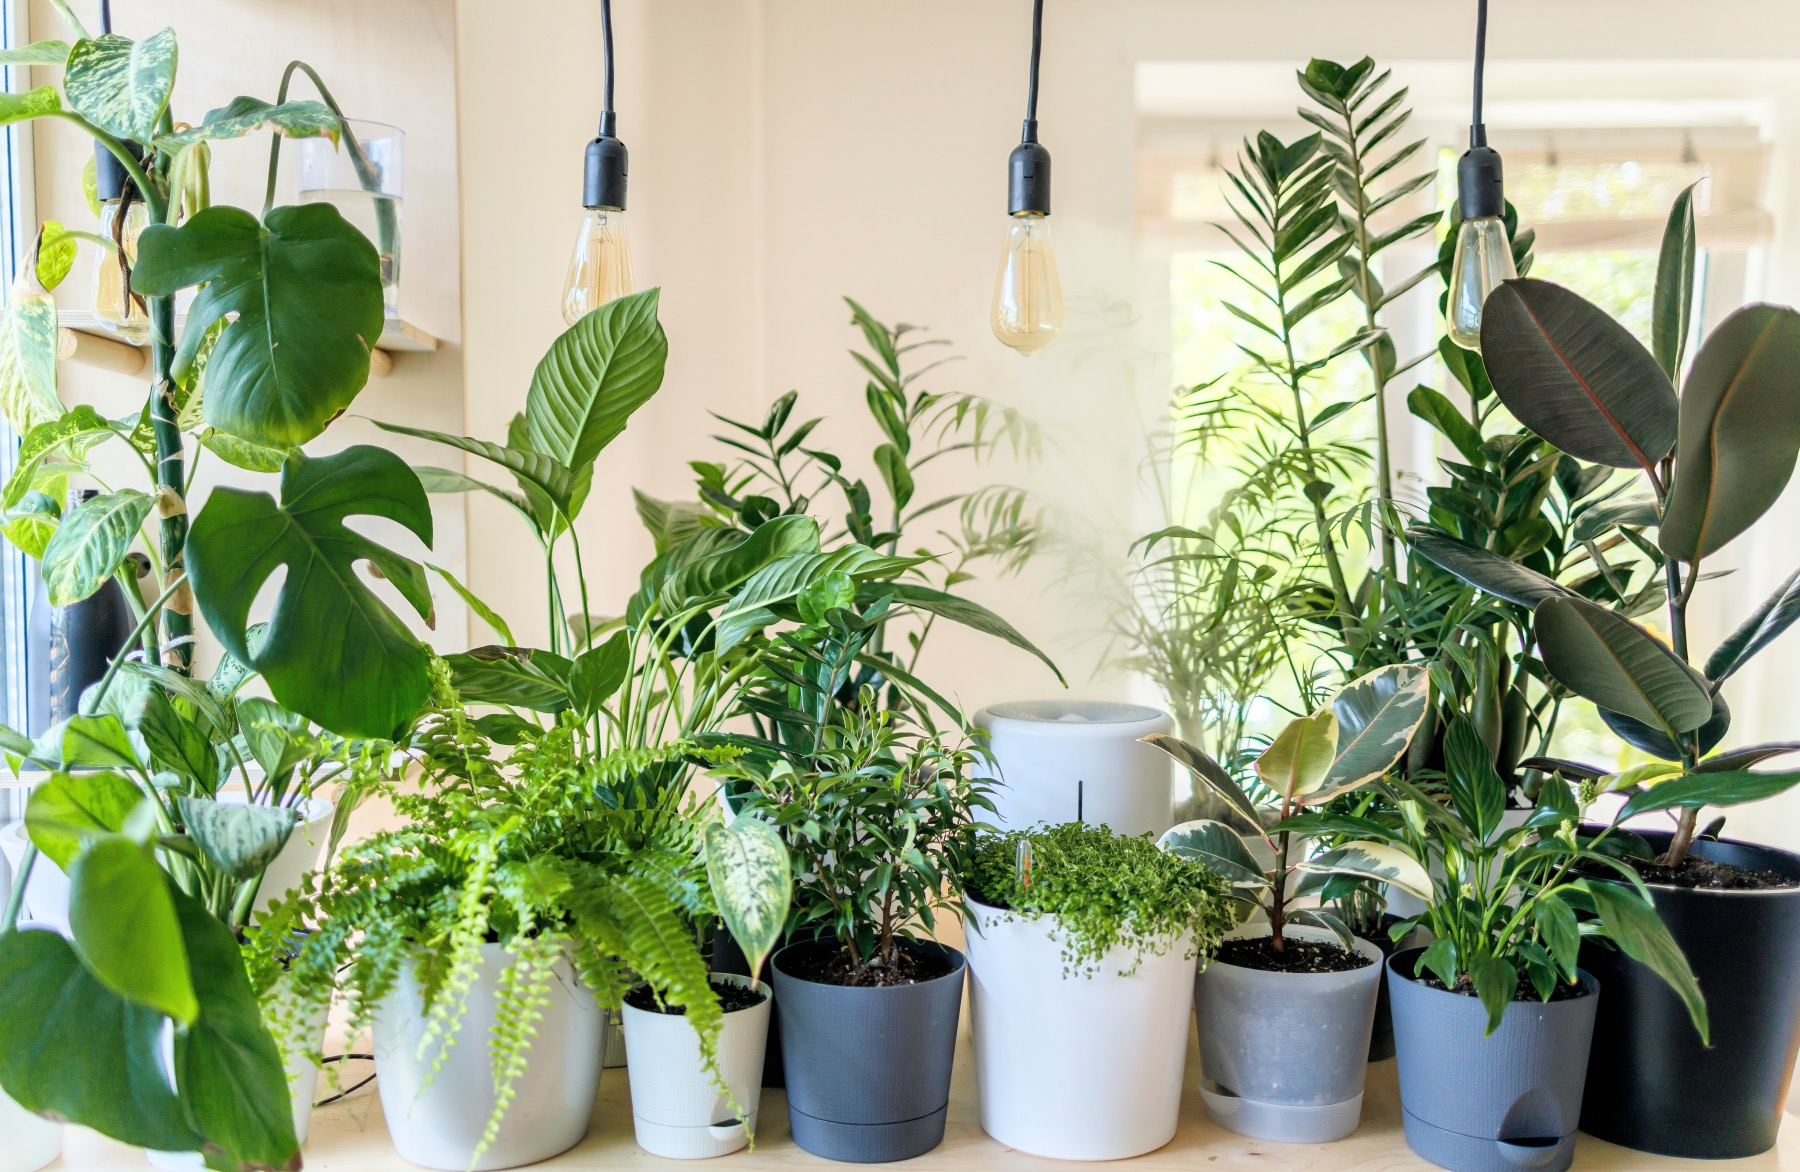 ferns and other house plants gardening care guide